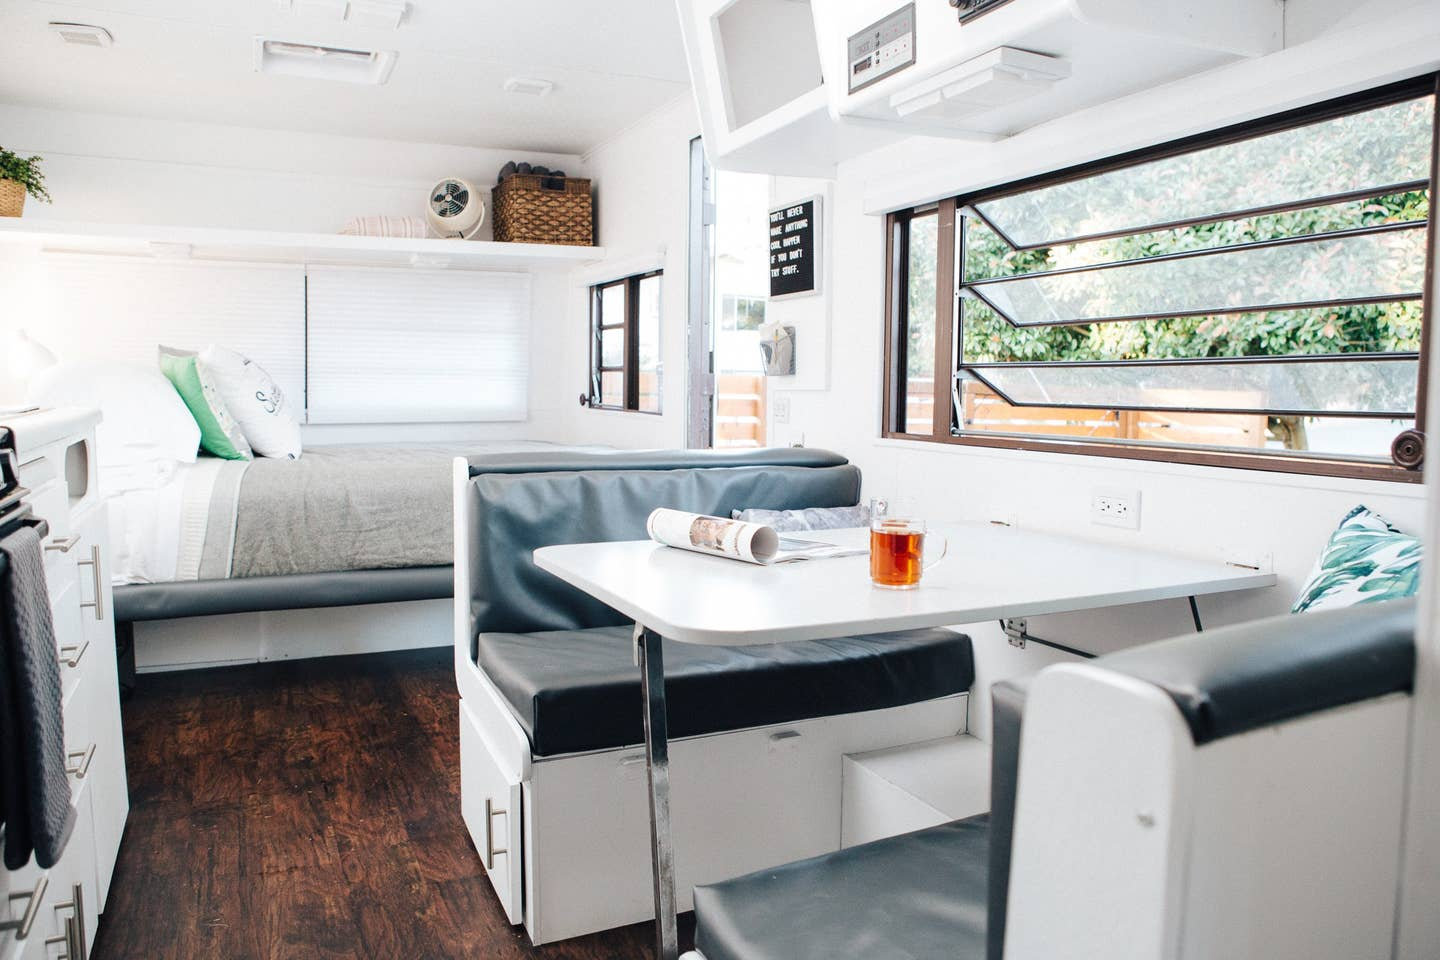 The inside of a trailer with all-white walls and shelves has a dinette along the right wall with a window above and a full-size bed built into the far wall.